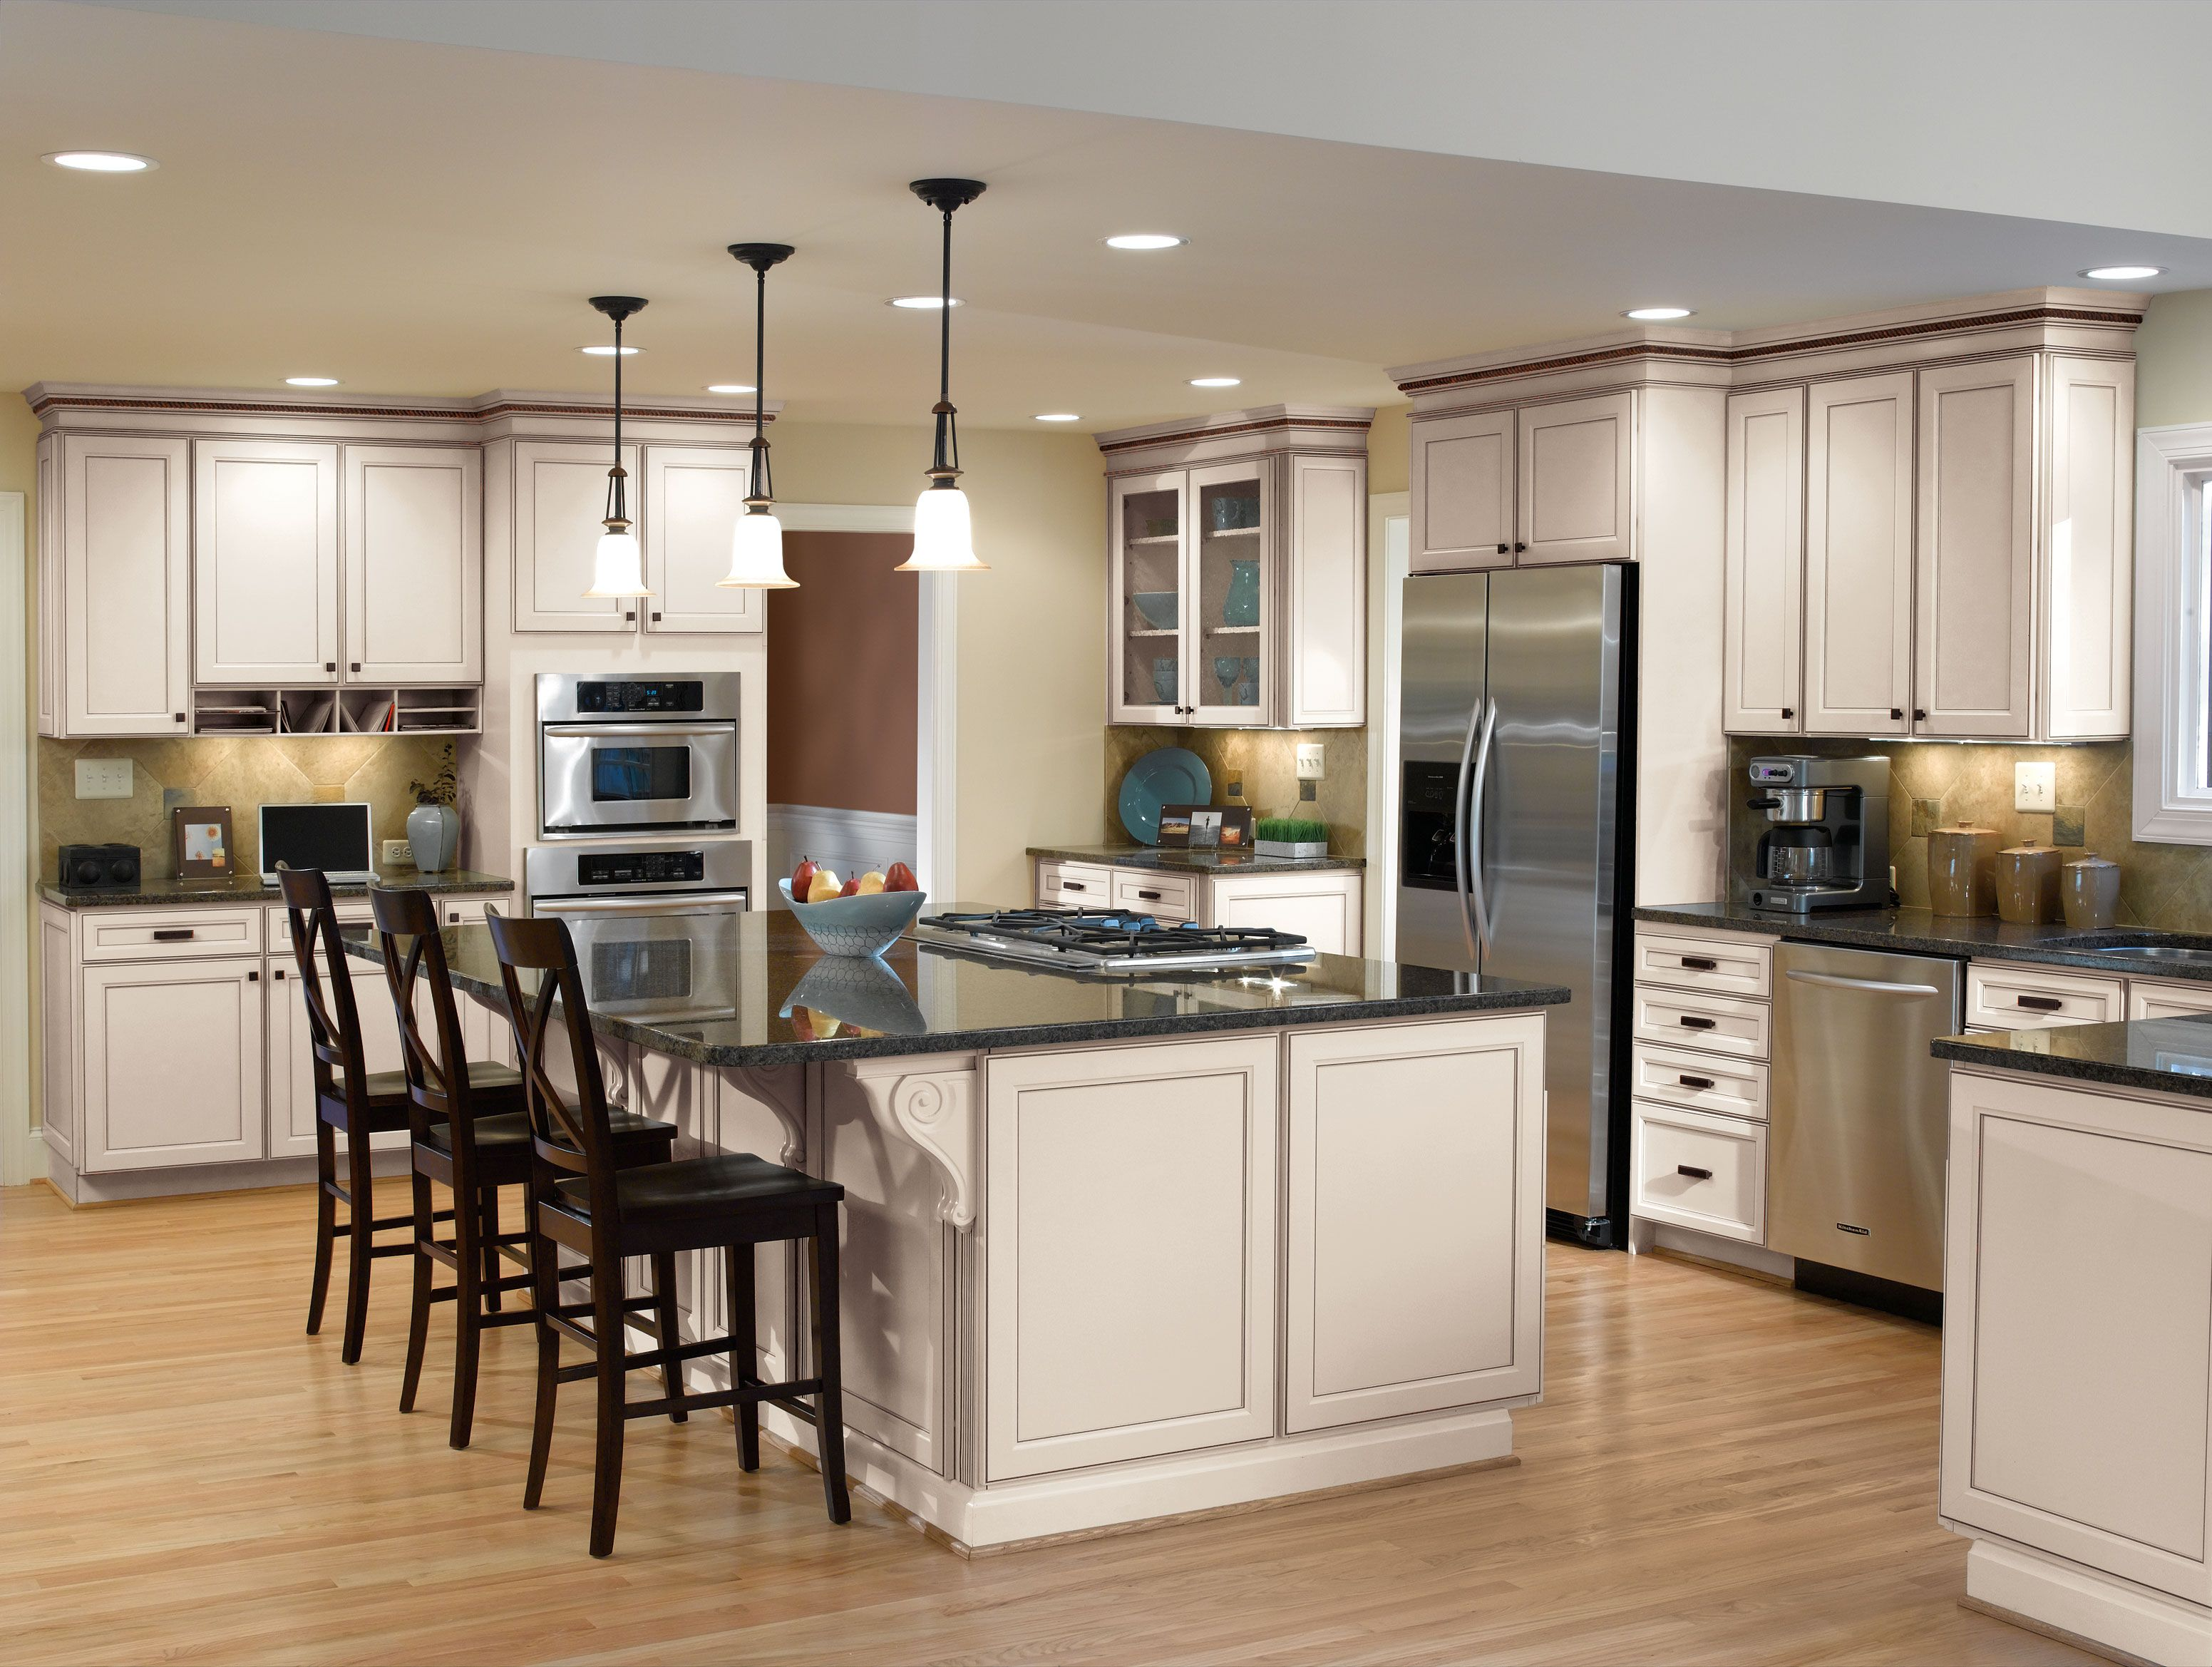 Aristokraft's soft and subtle Toasted Antique finish gives